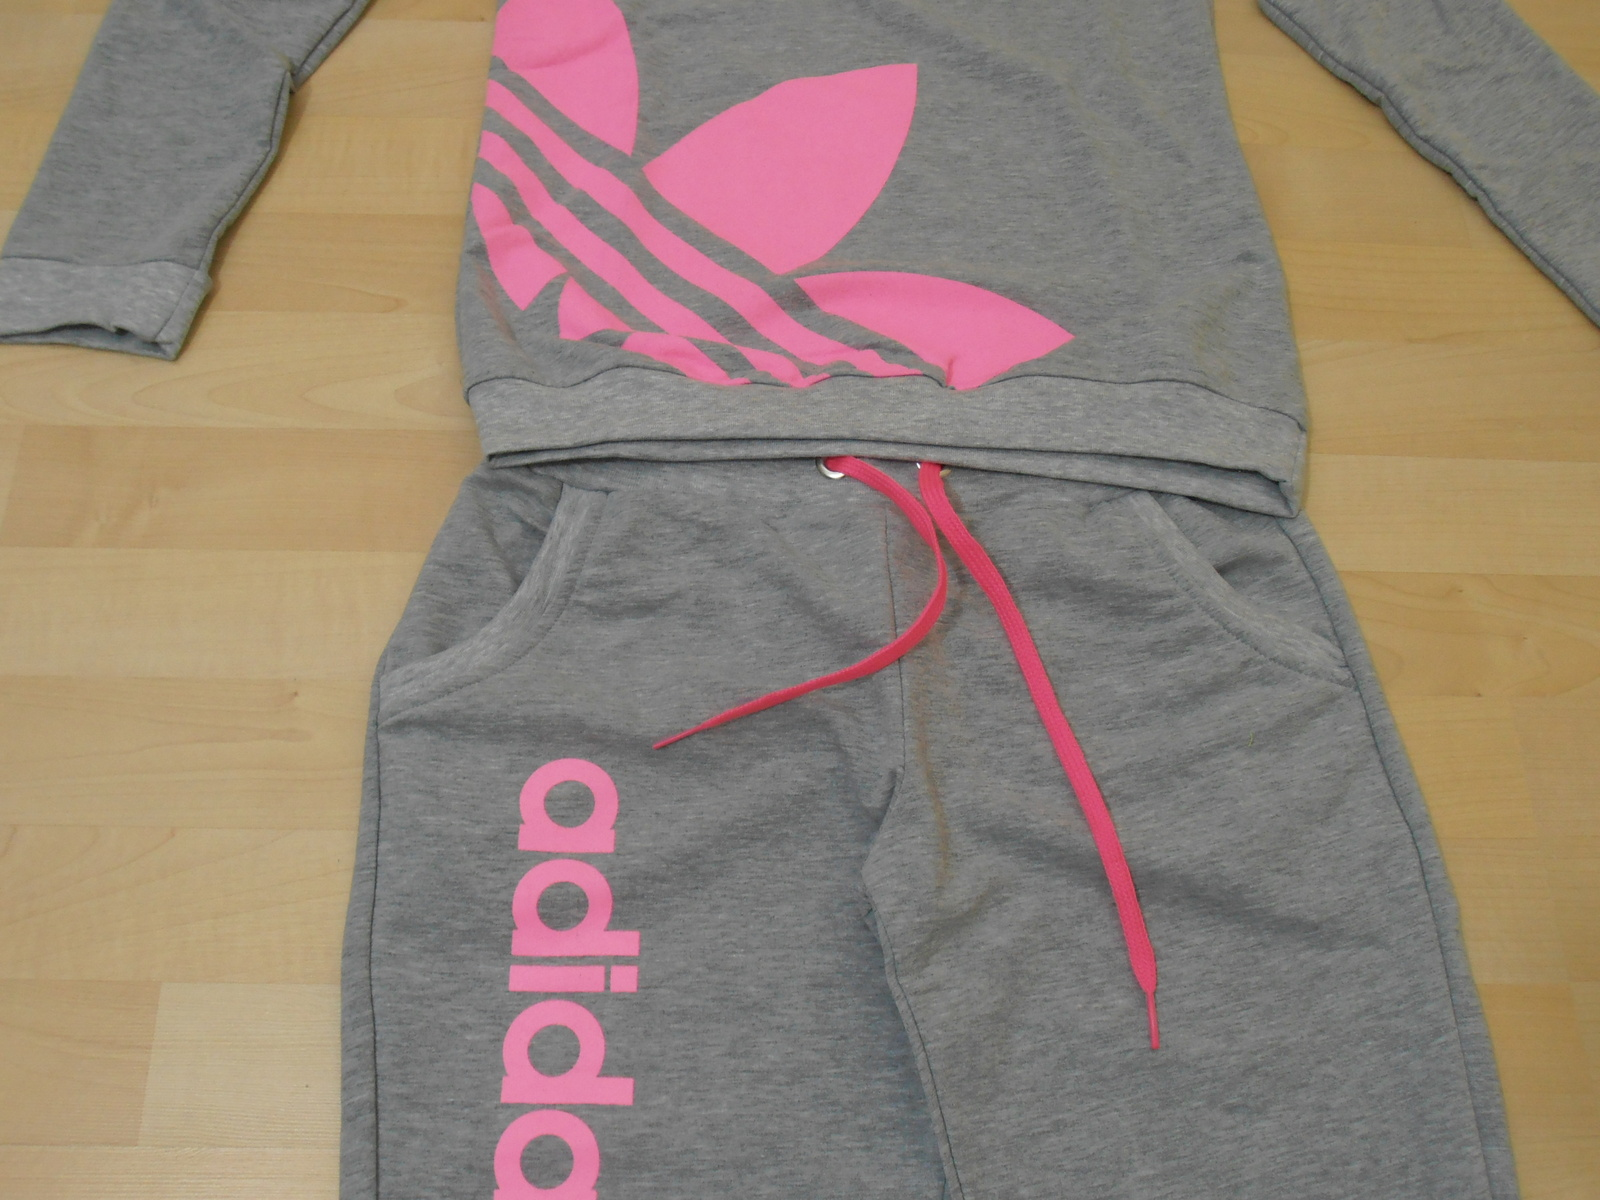 New Adidas Neon Color Women Tracksuit Sweatsuit Jogging Gray/Pink color - Athletic Apparel